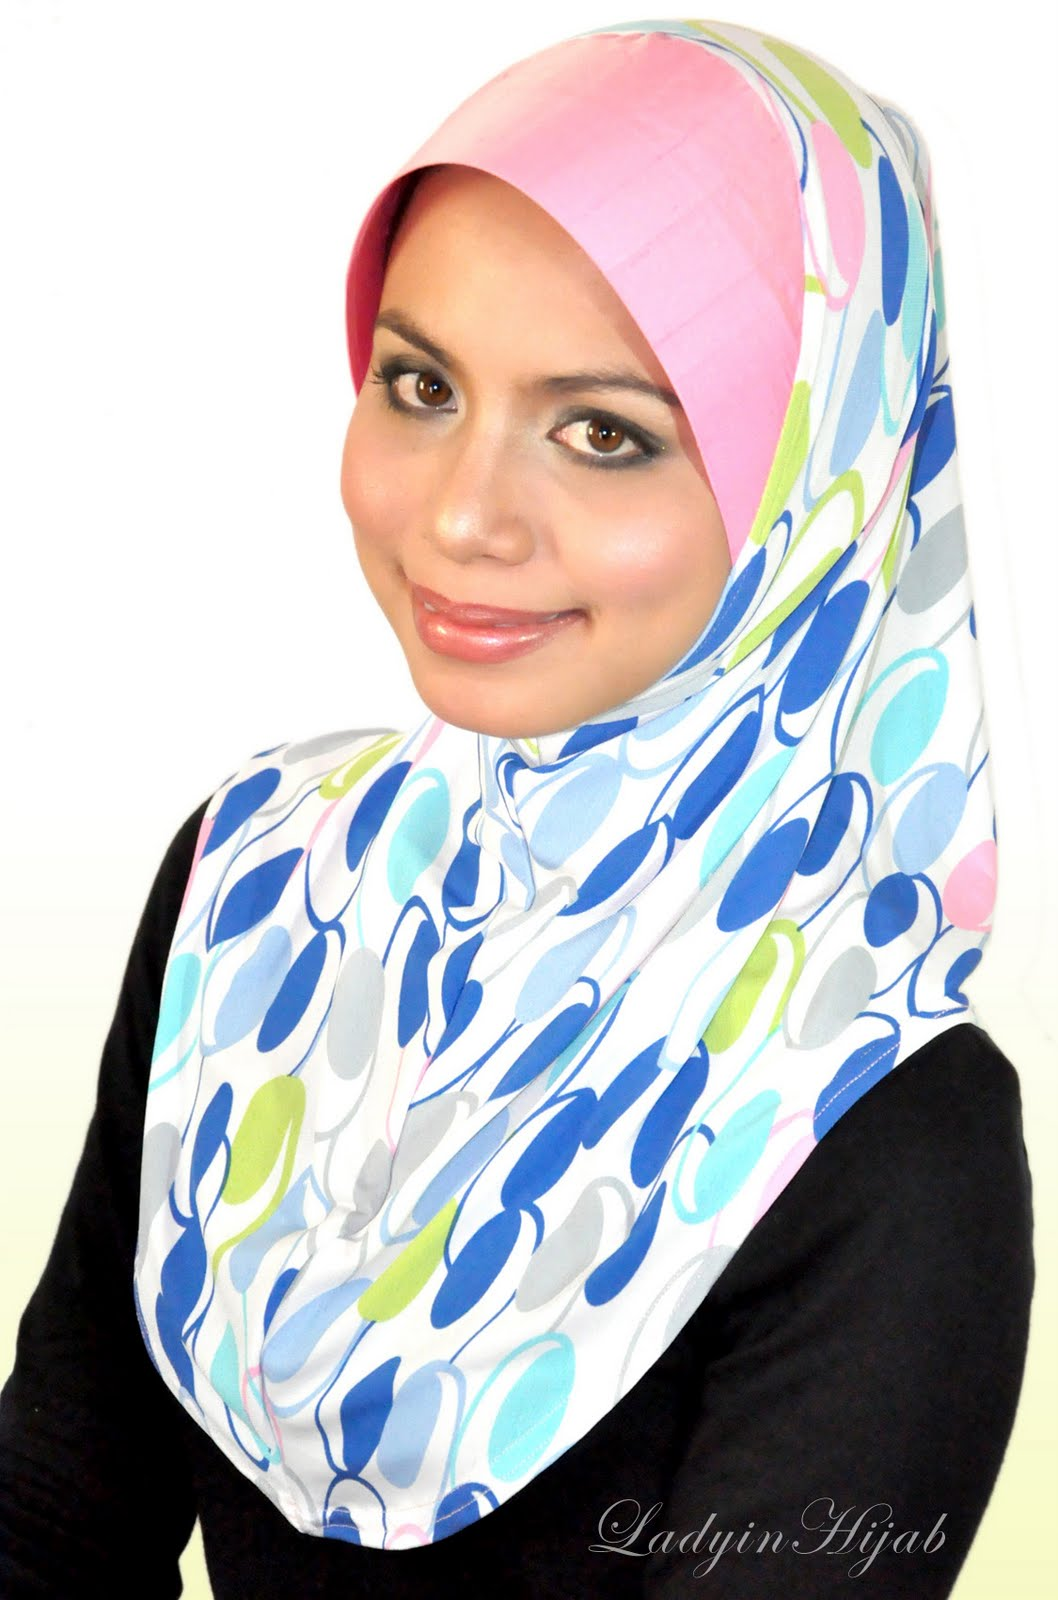 Cached Lady in hijab photos